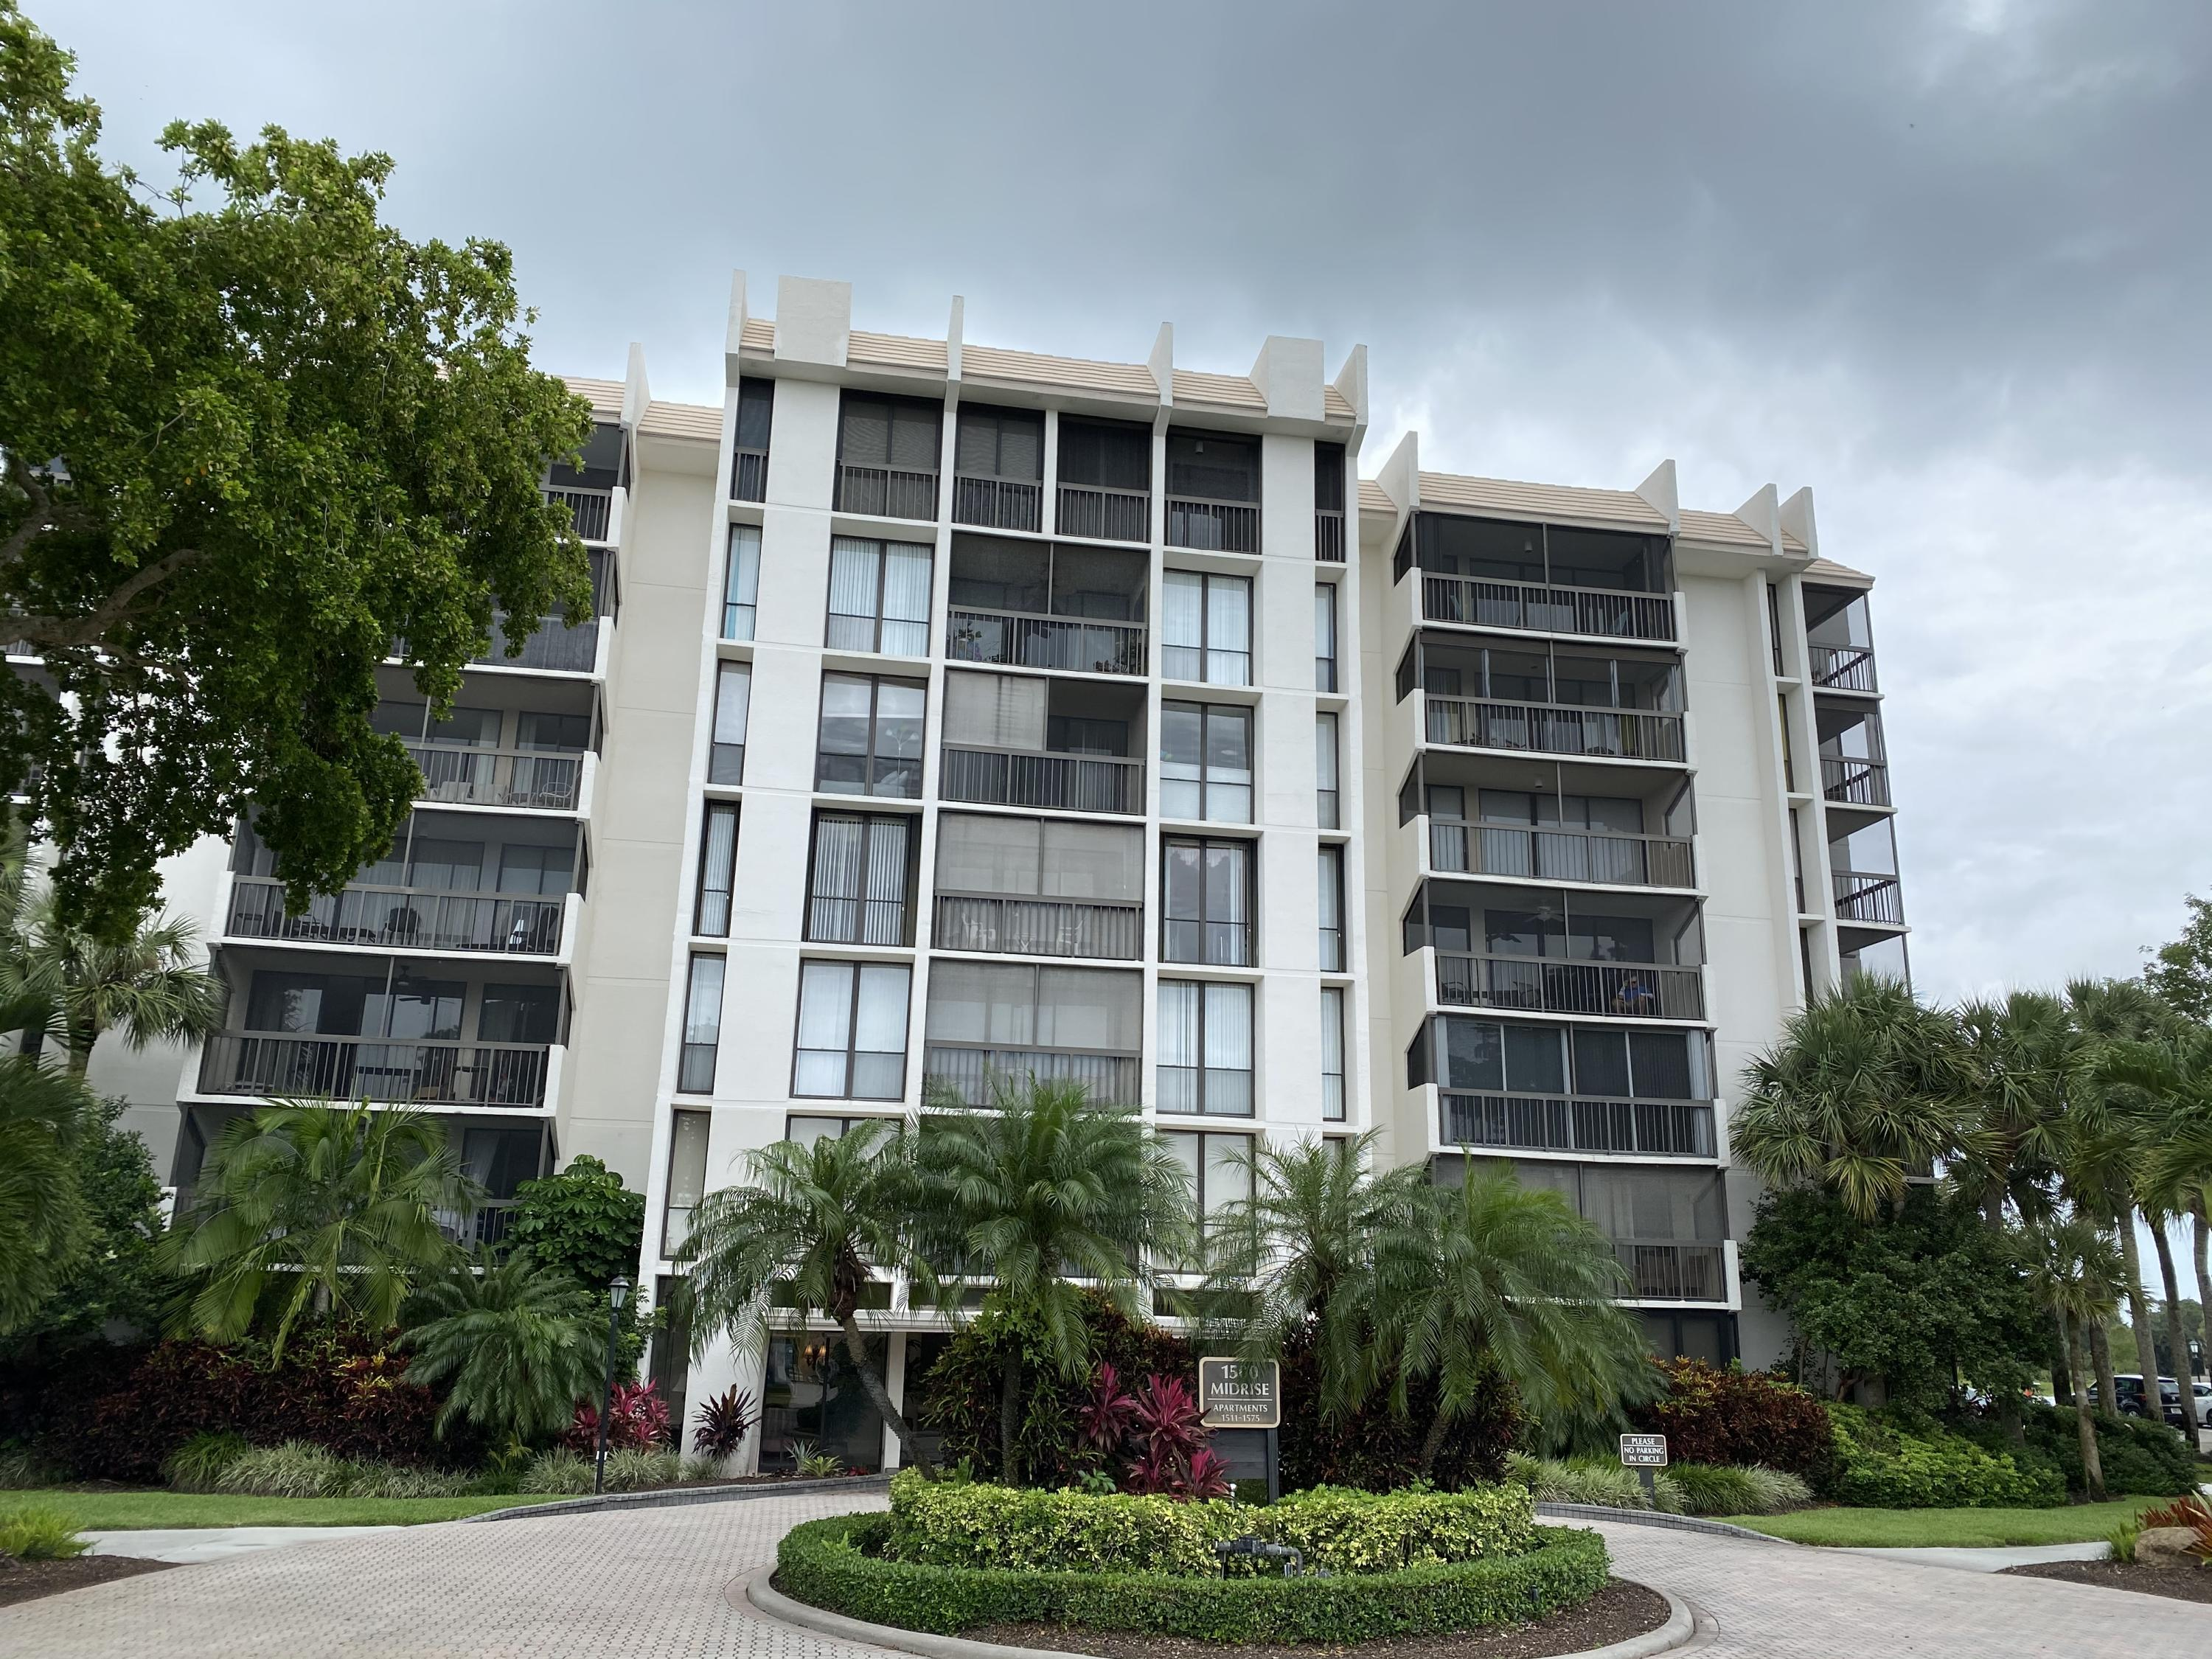 Photo of 1551 Bridgewood Drive #1551, Boca Raton, FL 33434